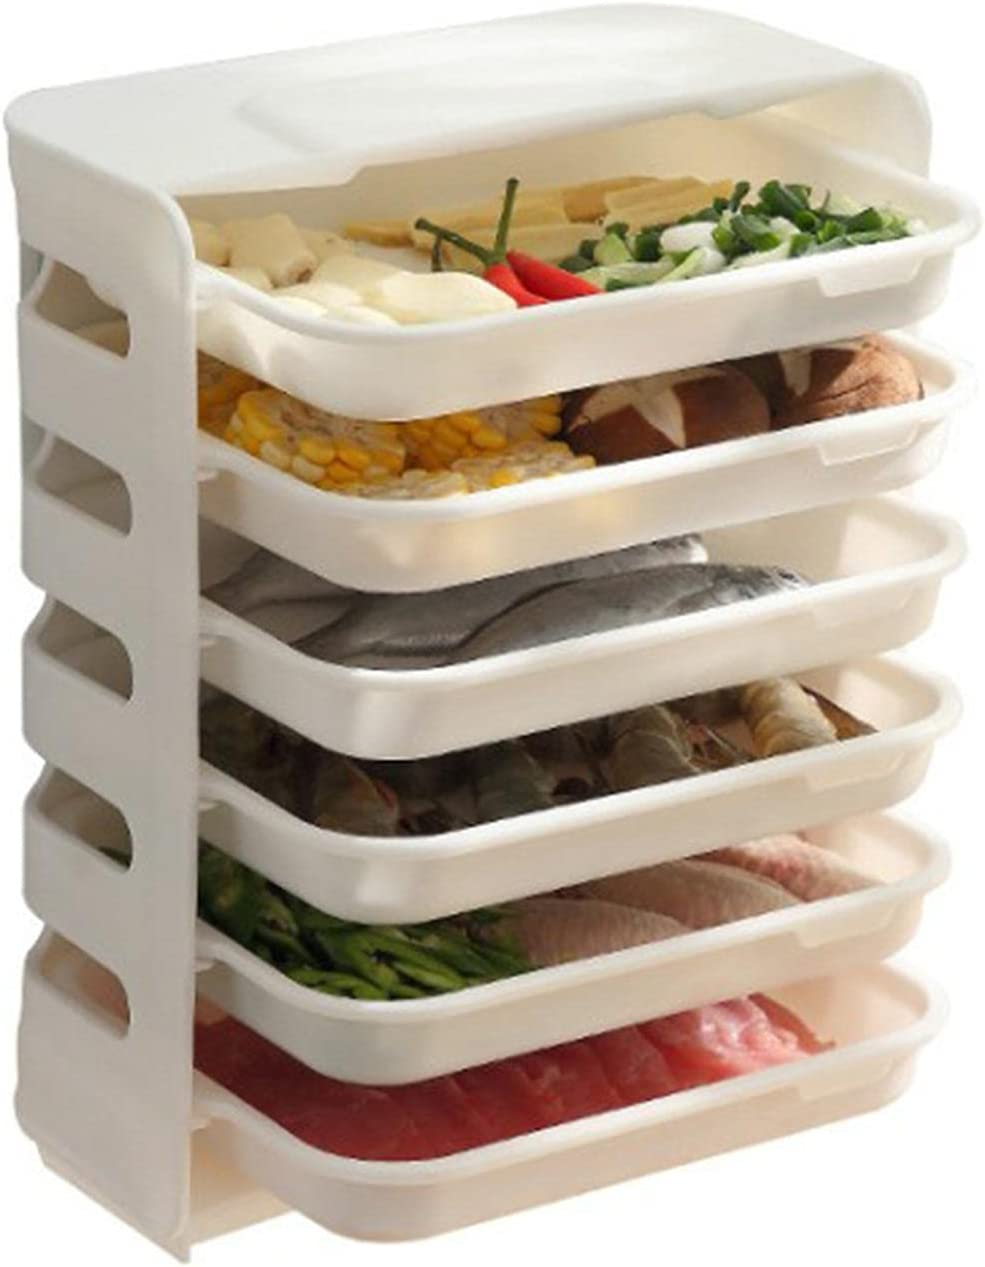 oftenrain Vegetable Max 50% OFF Storage Meat Rack,Plate,Stackable Max 50% OFF Fruit